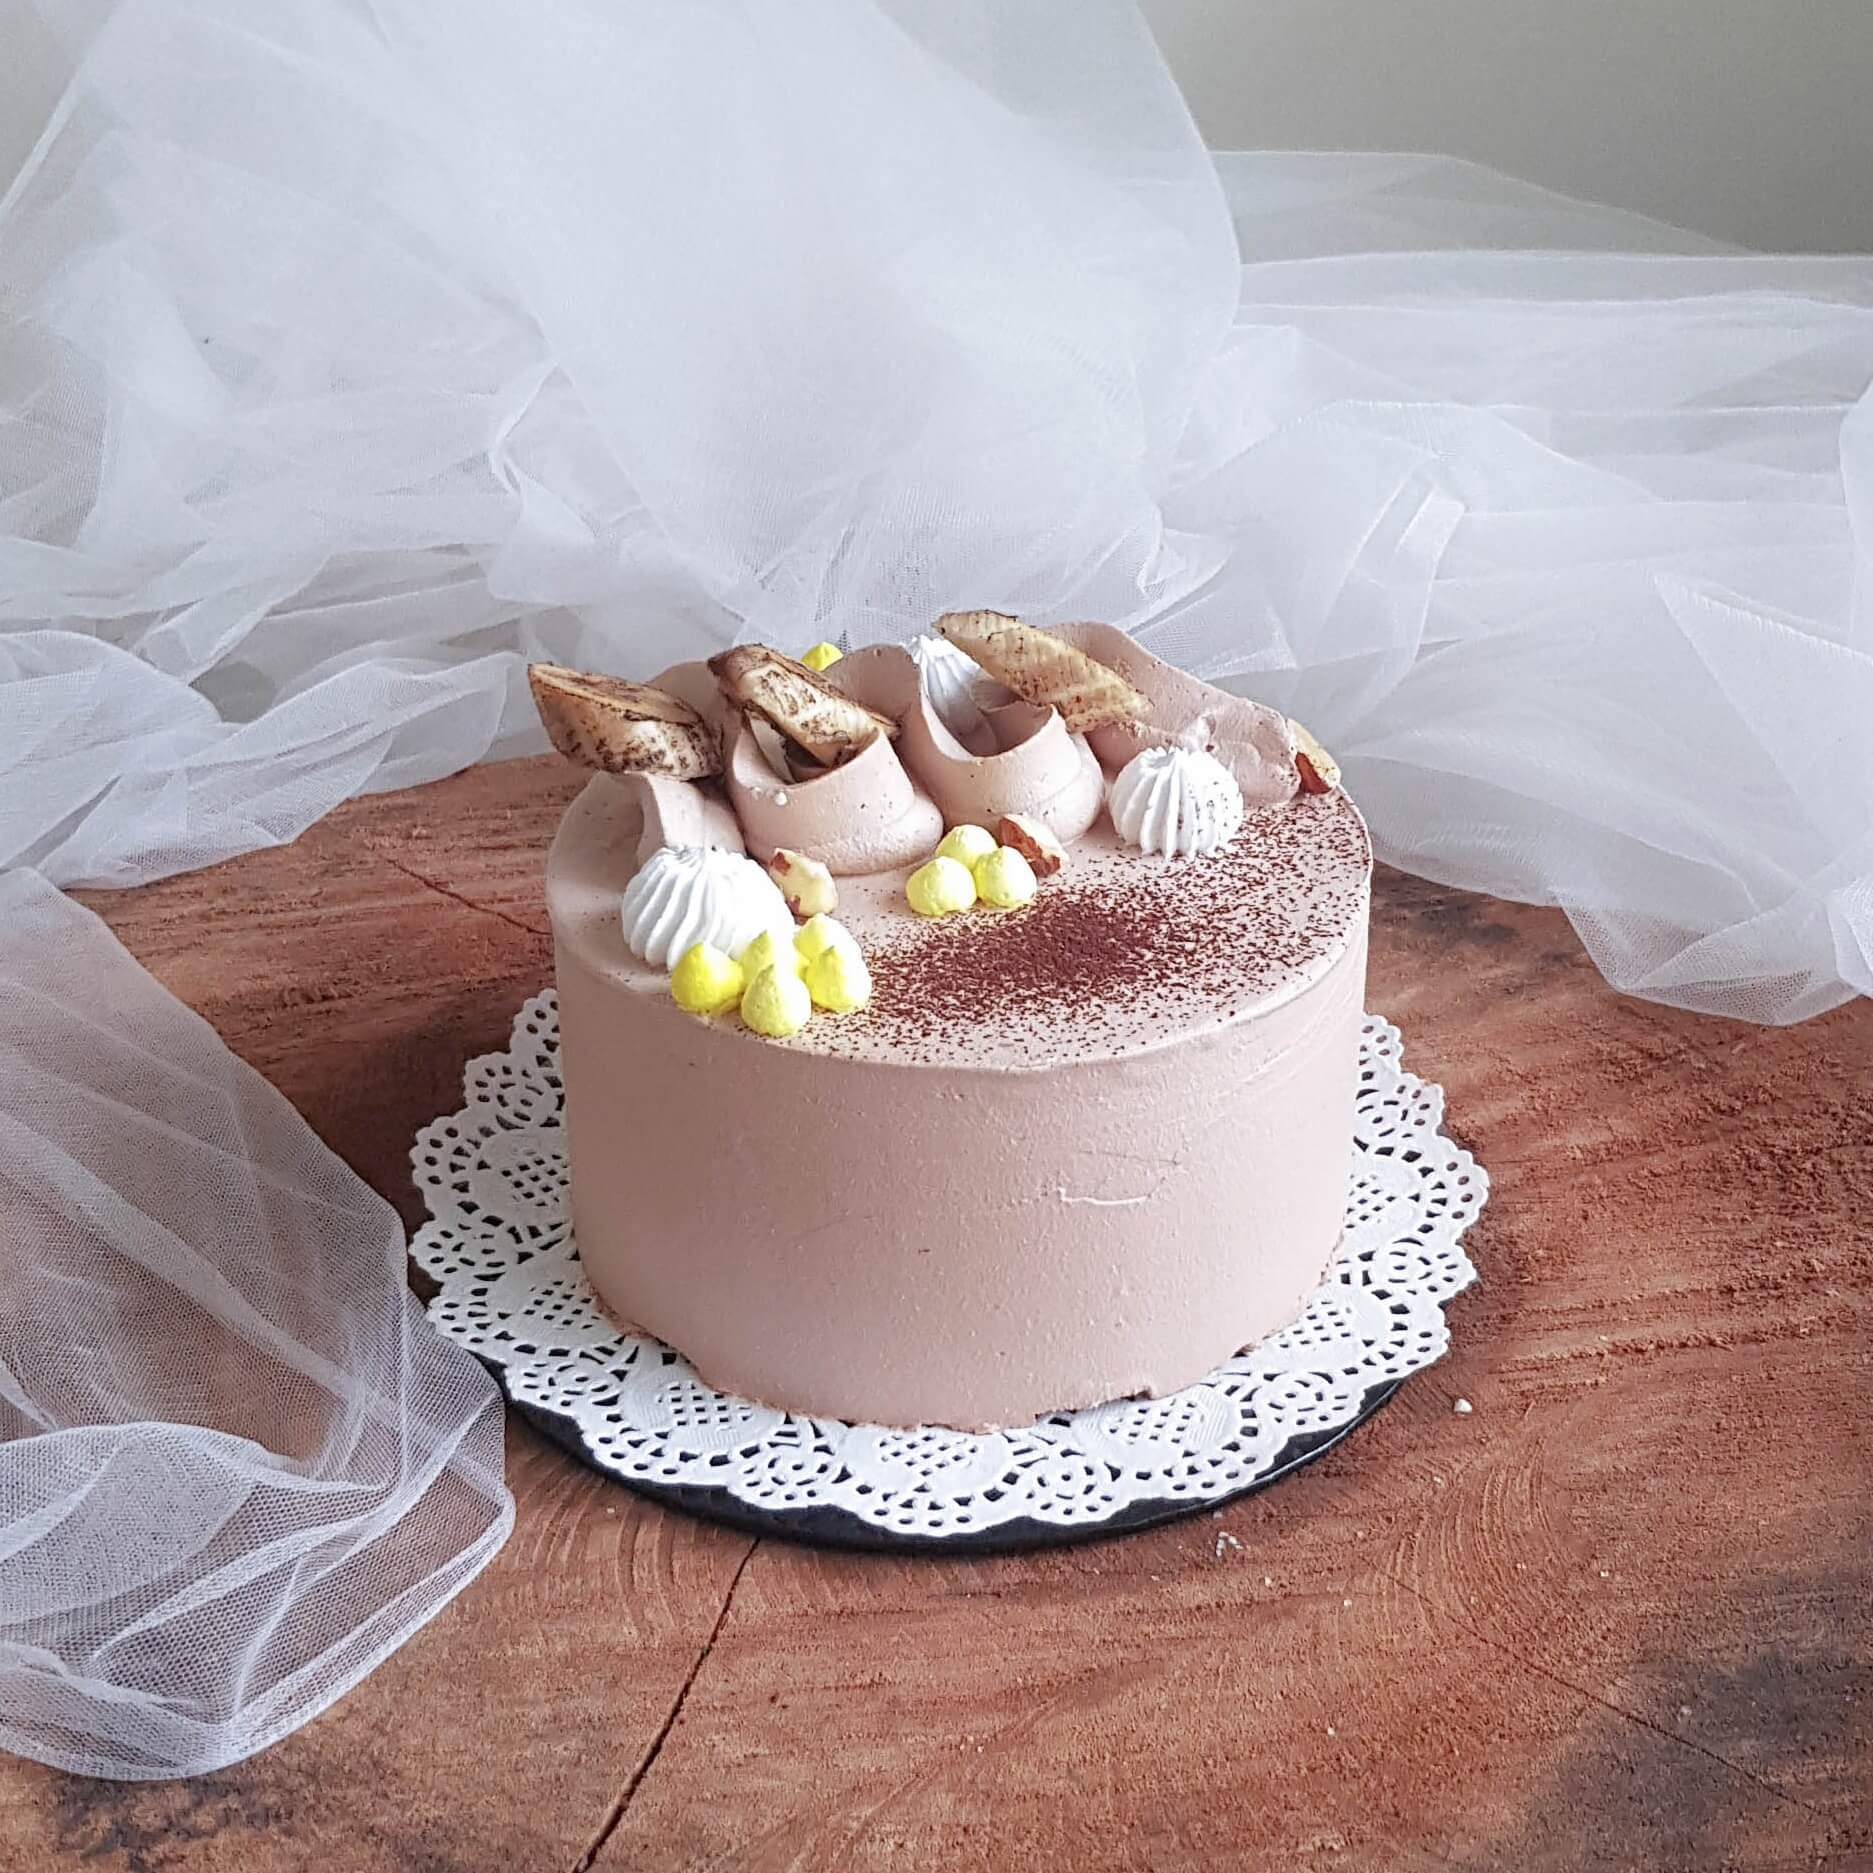 [collaboration] Banana & Chocolate Cake by Bake the Dream X AfterRainFlorist, PJ FLorist, KL & Selangor Flower Delivery Service